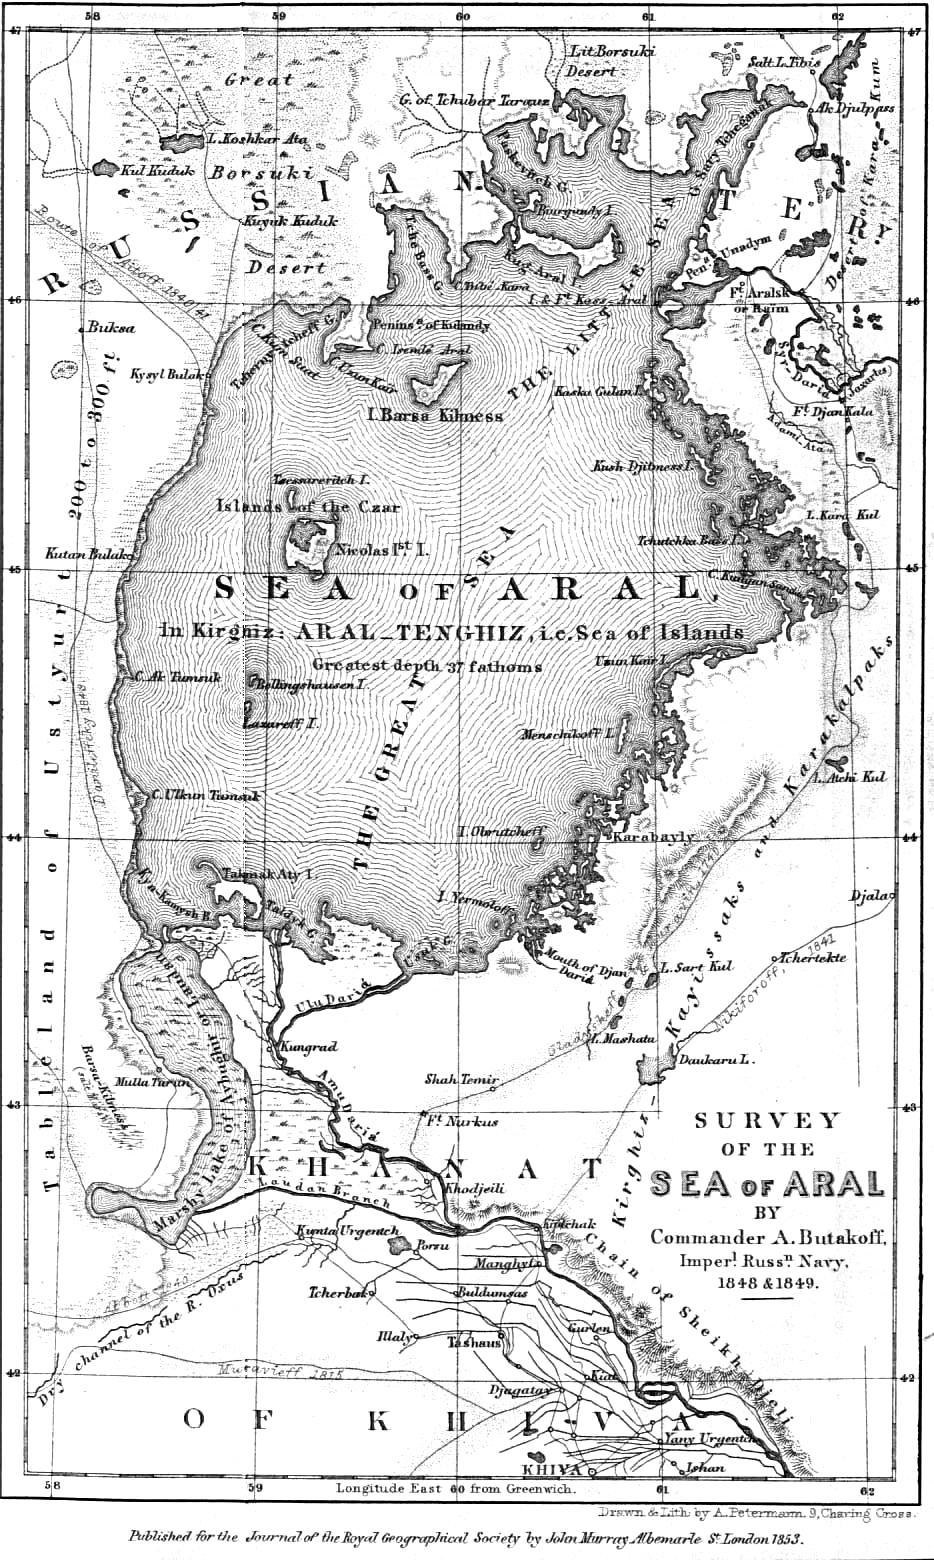 Survey of the Sea of Aral 1853